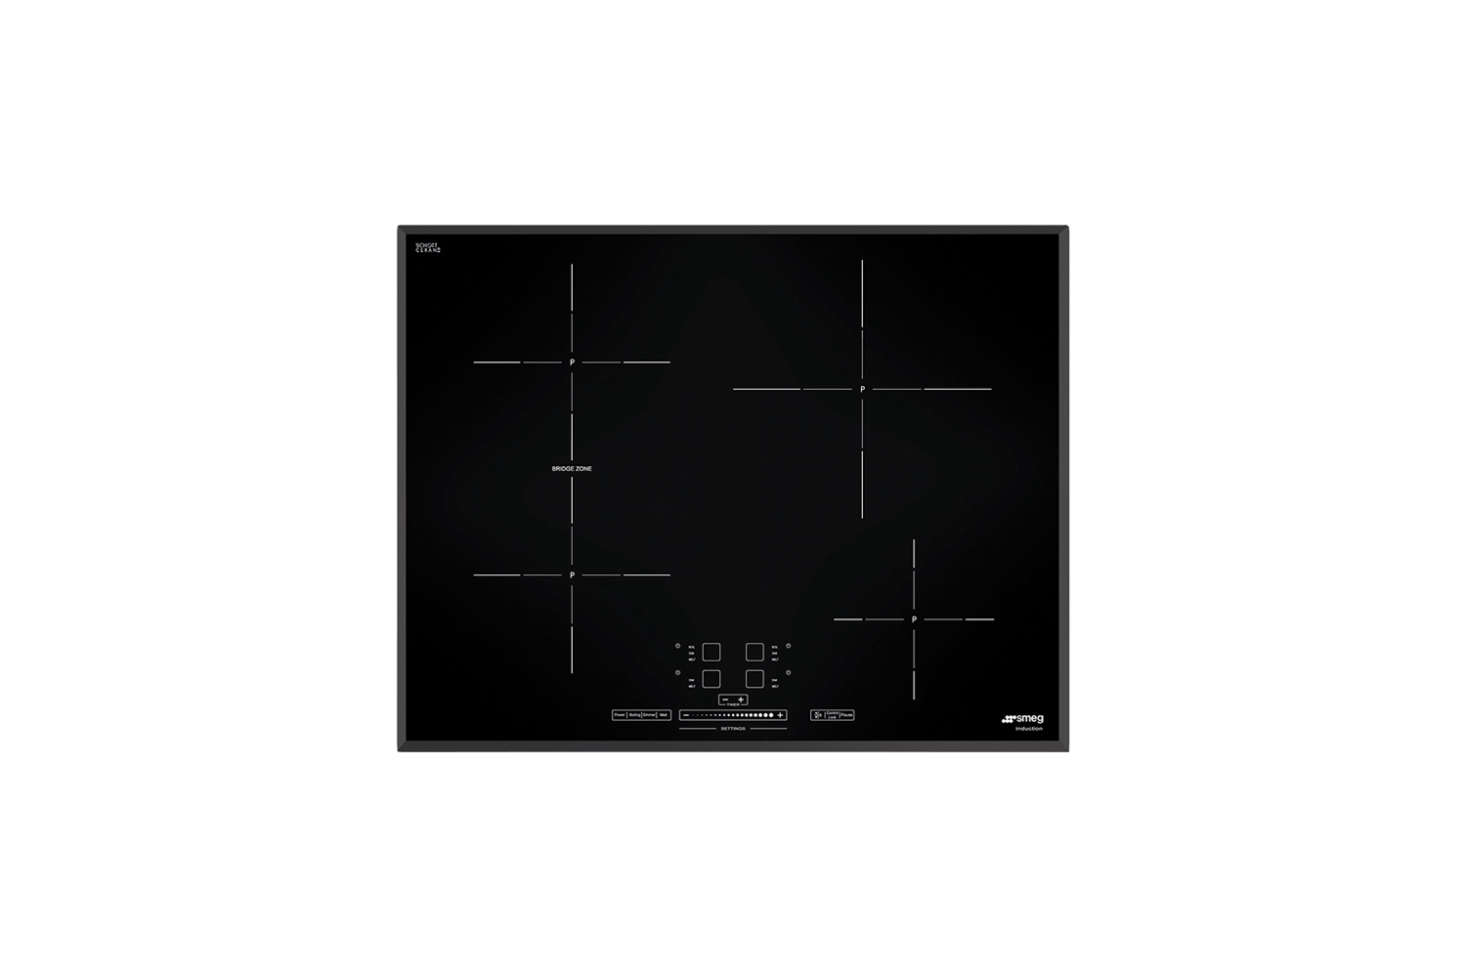 The electric cooktop is a Smeg design available in the EU. For a US equivalent, the3data-src=